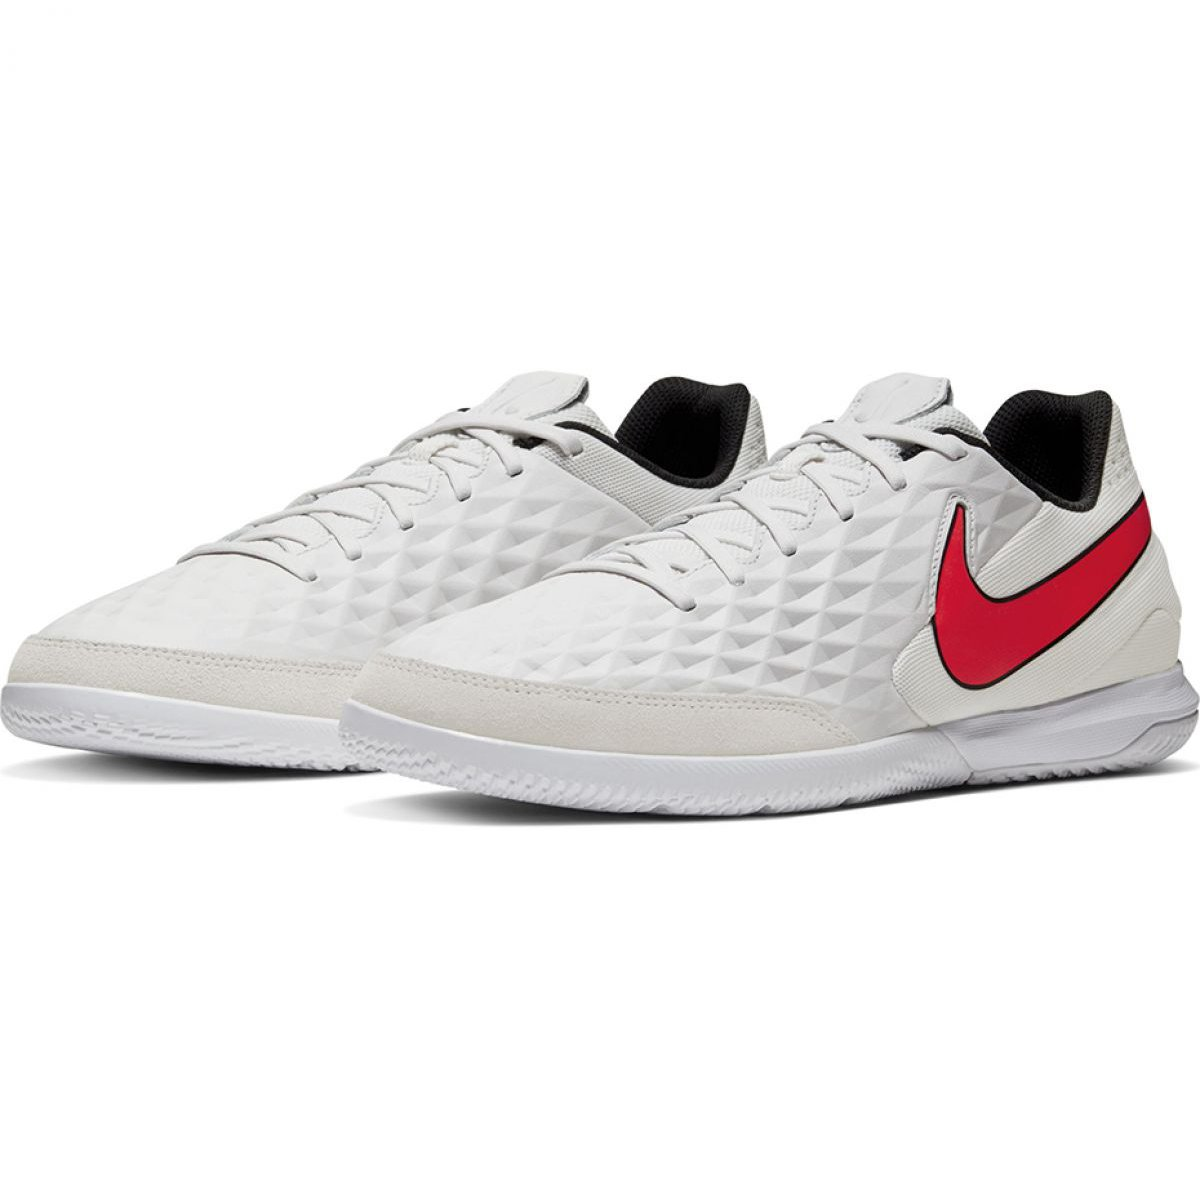 NIKE LEGEND VIII ACADEMY IC AT6099-061